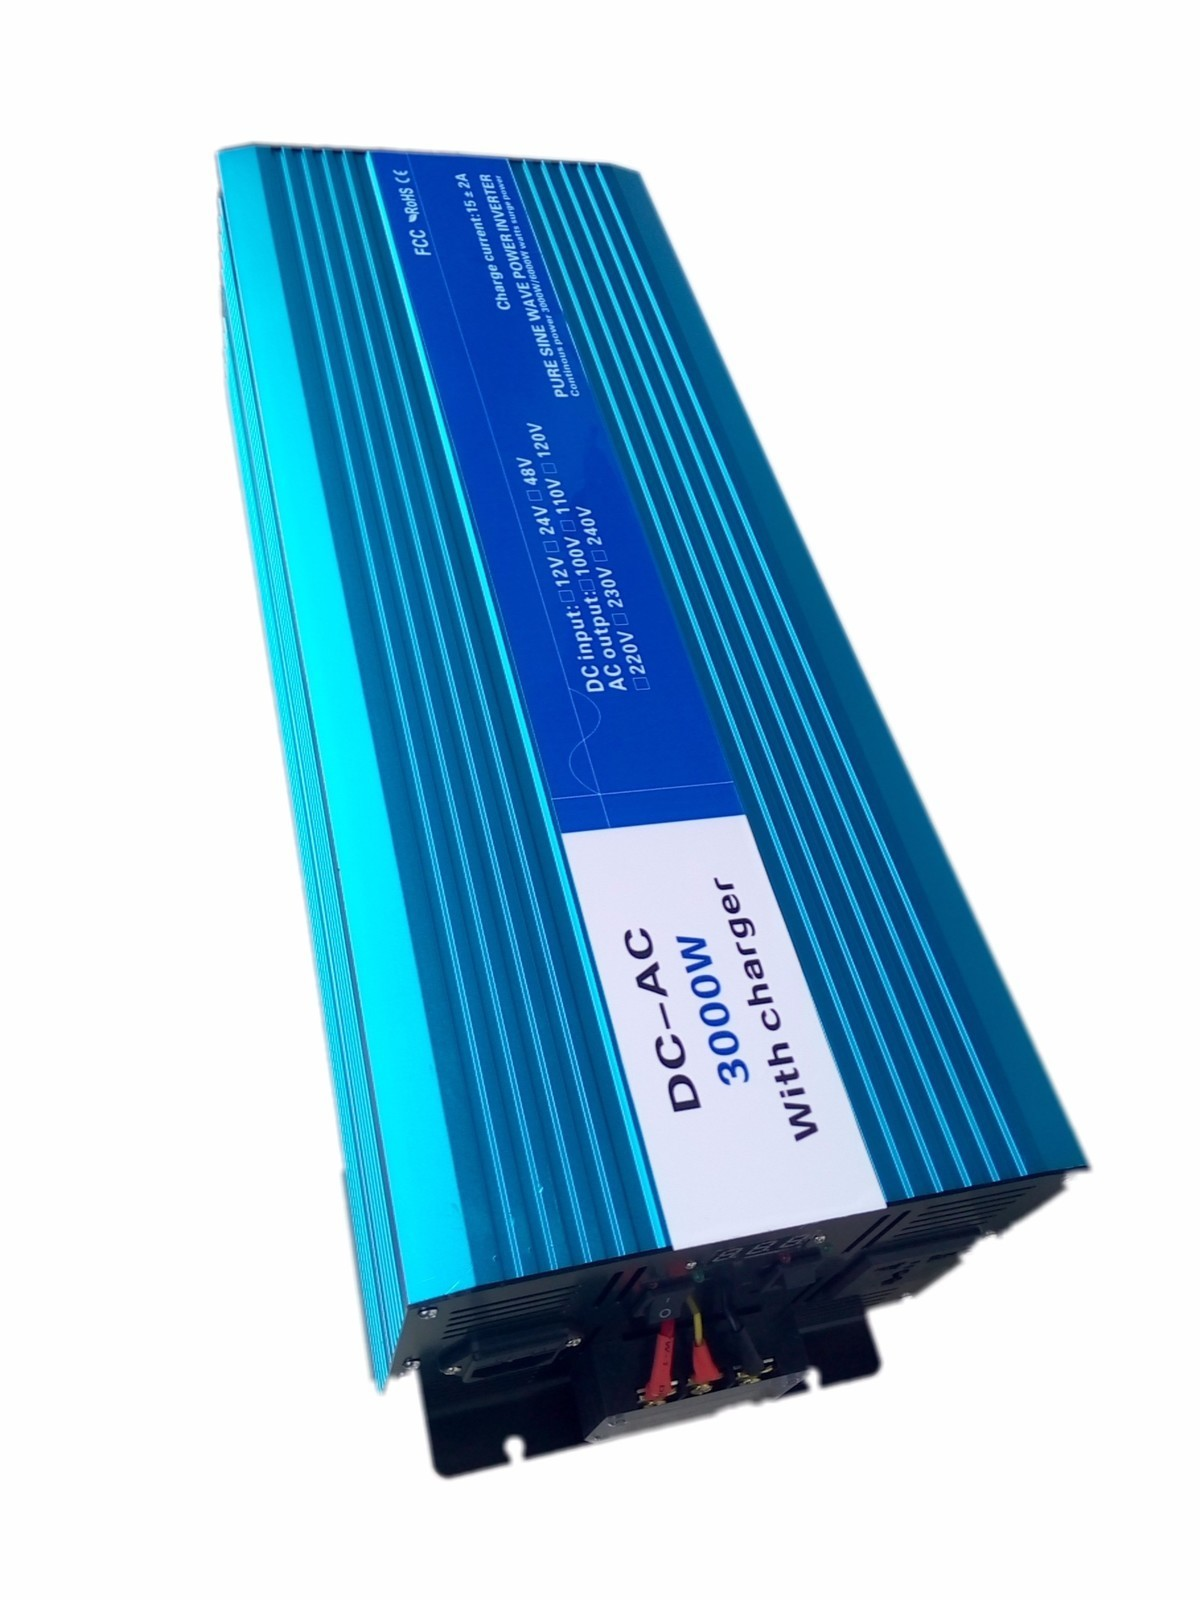 3000W Pure Sine Wave Inverter,DC 12V/24V/48V To AC 110V/220V,off Grid Solar voltage converter With Panel Charger And UPS 1000w pure sine wave inverter dc 12v 24v 48v to ac 110v 220v off grid solar power inverter voltage converter with charger ups